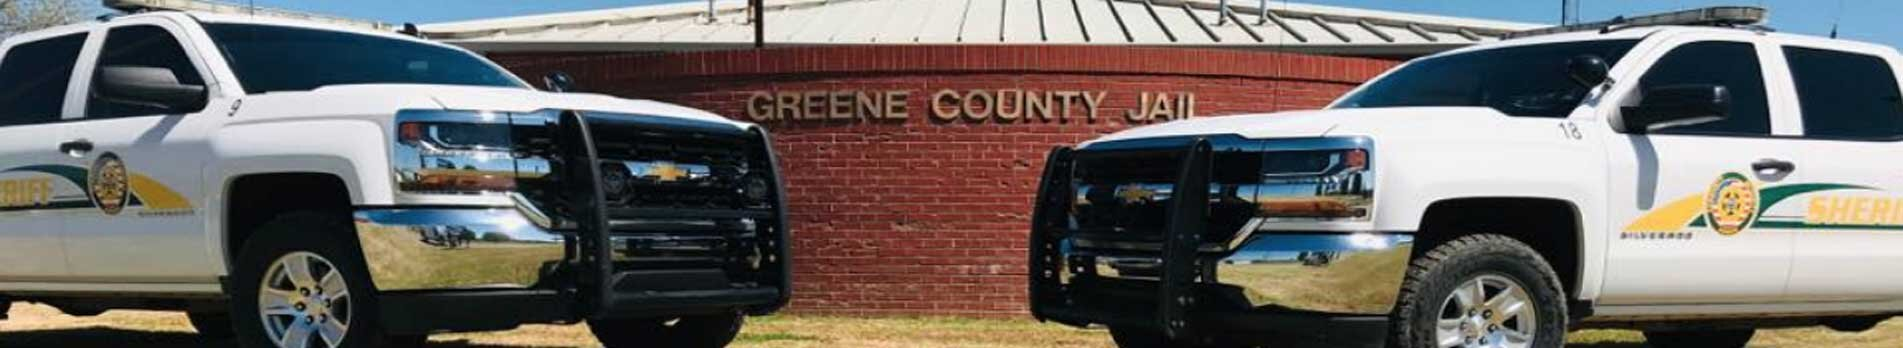 Greene County Police trucks in front of the Greene County Jail.